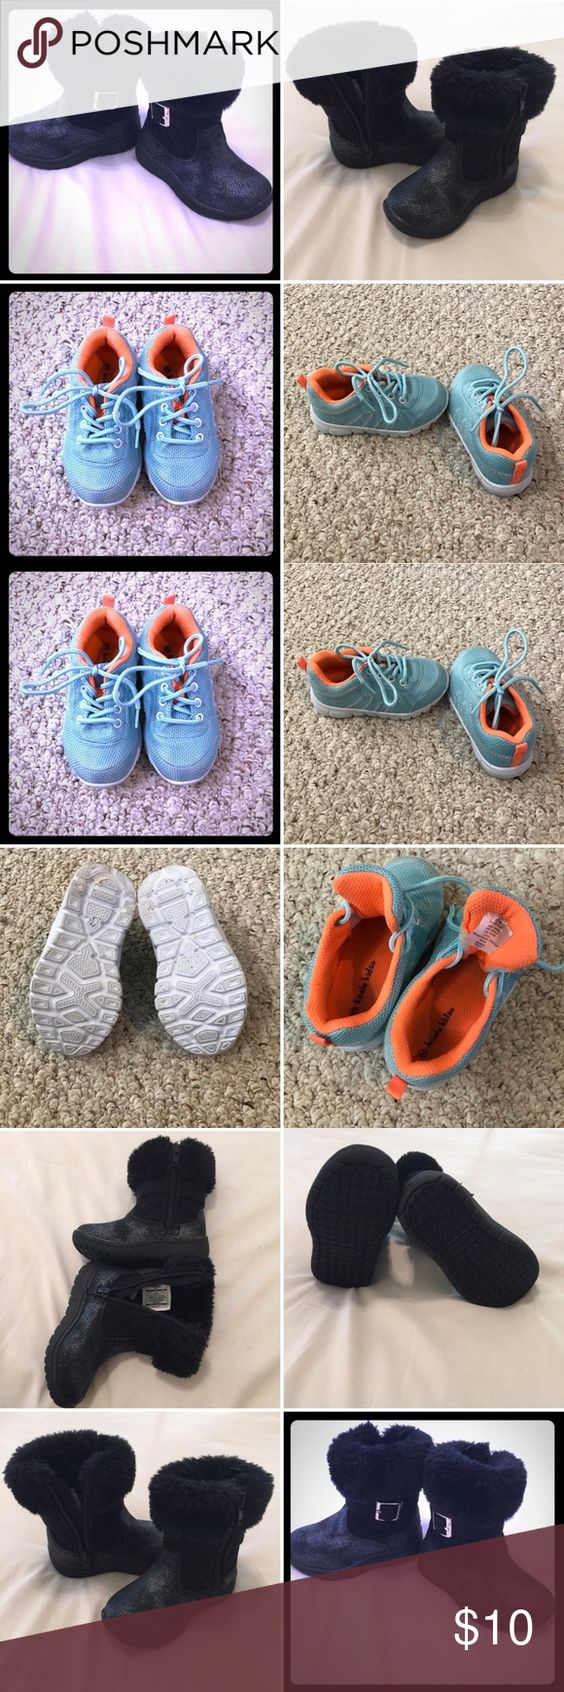 RESERVED listing for jill16 Reserved listing for @jill16. Aqua and orange sneakers and black osh kosh boots.  Please see original listings for details, condition, sizes, etc. thanks! Osh Kosh Shoes